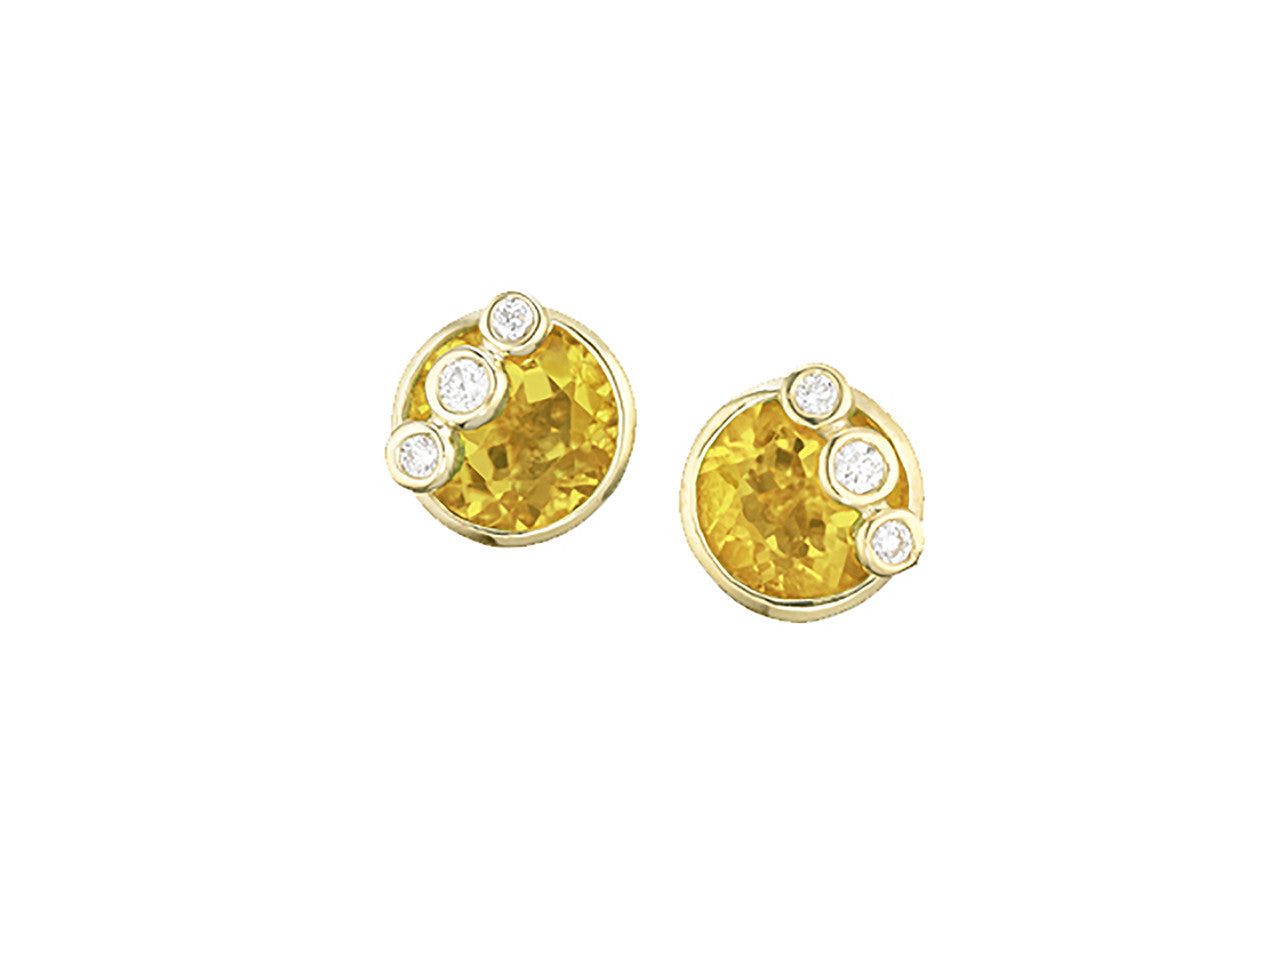 image silver sterling earrings shop cut fonn diamond asscher canary product plated micro platinum la halo of lafonn simulated pave stud